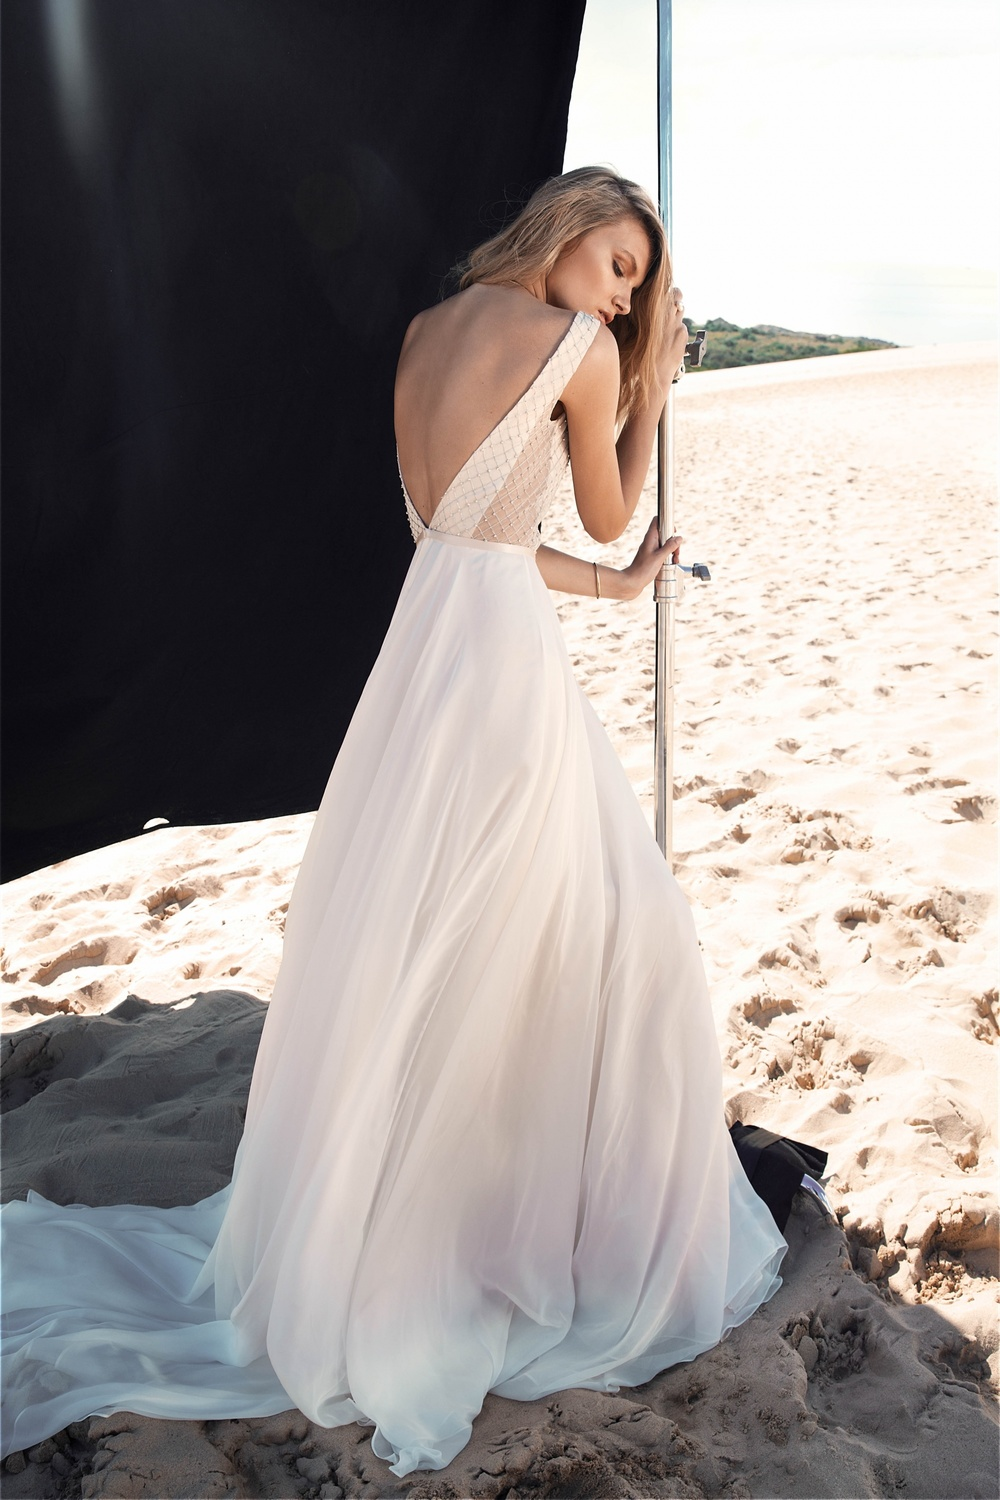 LOVE FIND CO. // ONE DAY BRIDAL 'Blessed Are The Curious' - Harper Gown